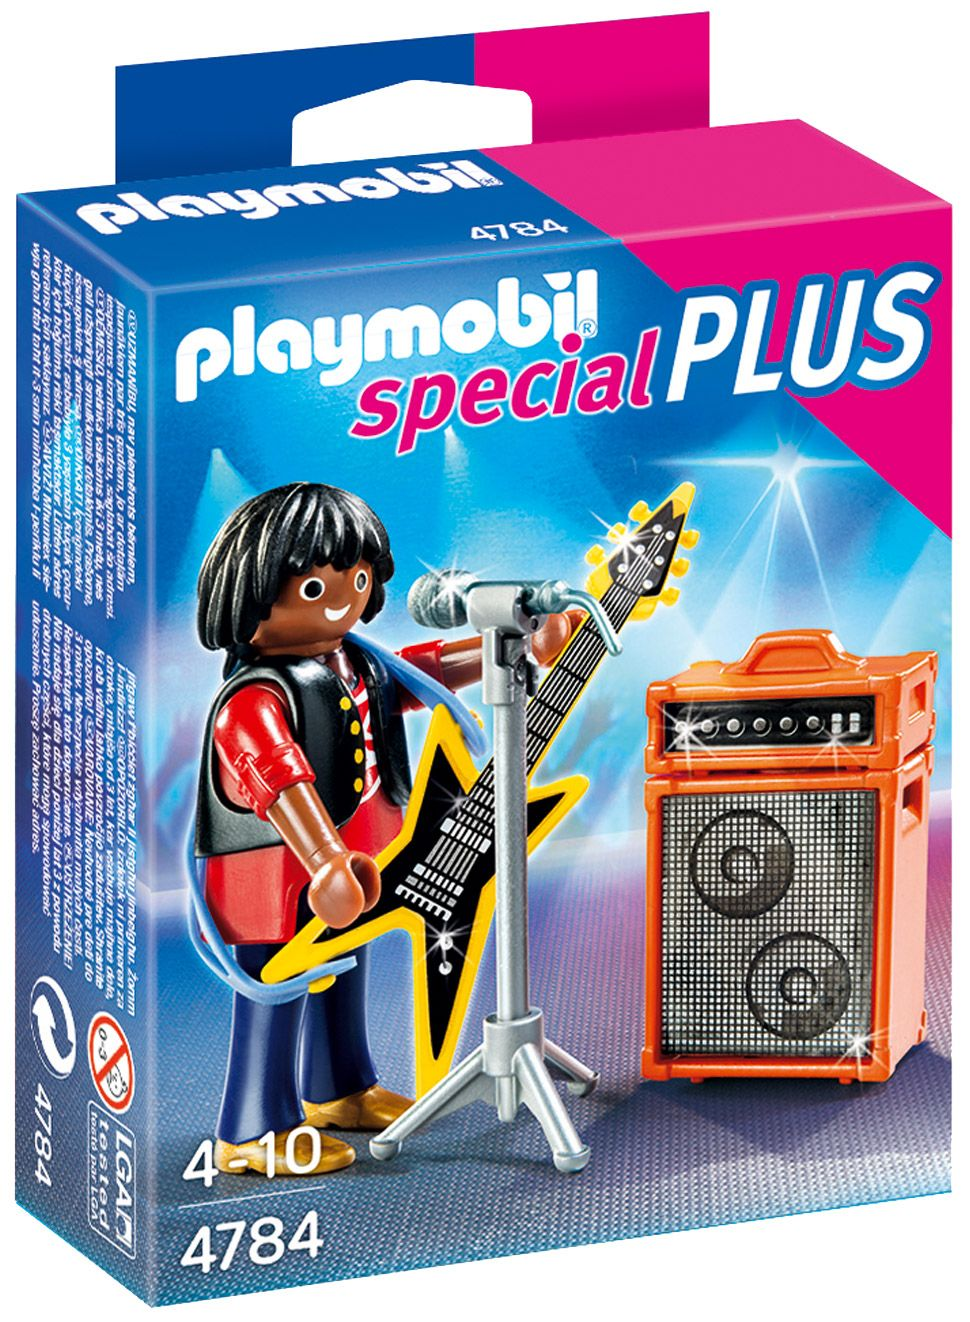 playmobil special plus 4784 pas cher chanteur de rock avec guitare. Black Bedroom Furniture Sets. Home Design Ideas